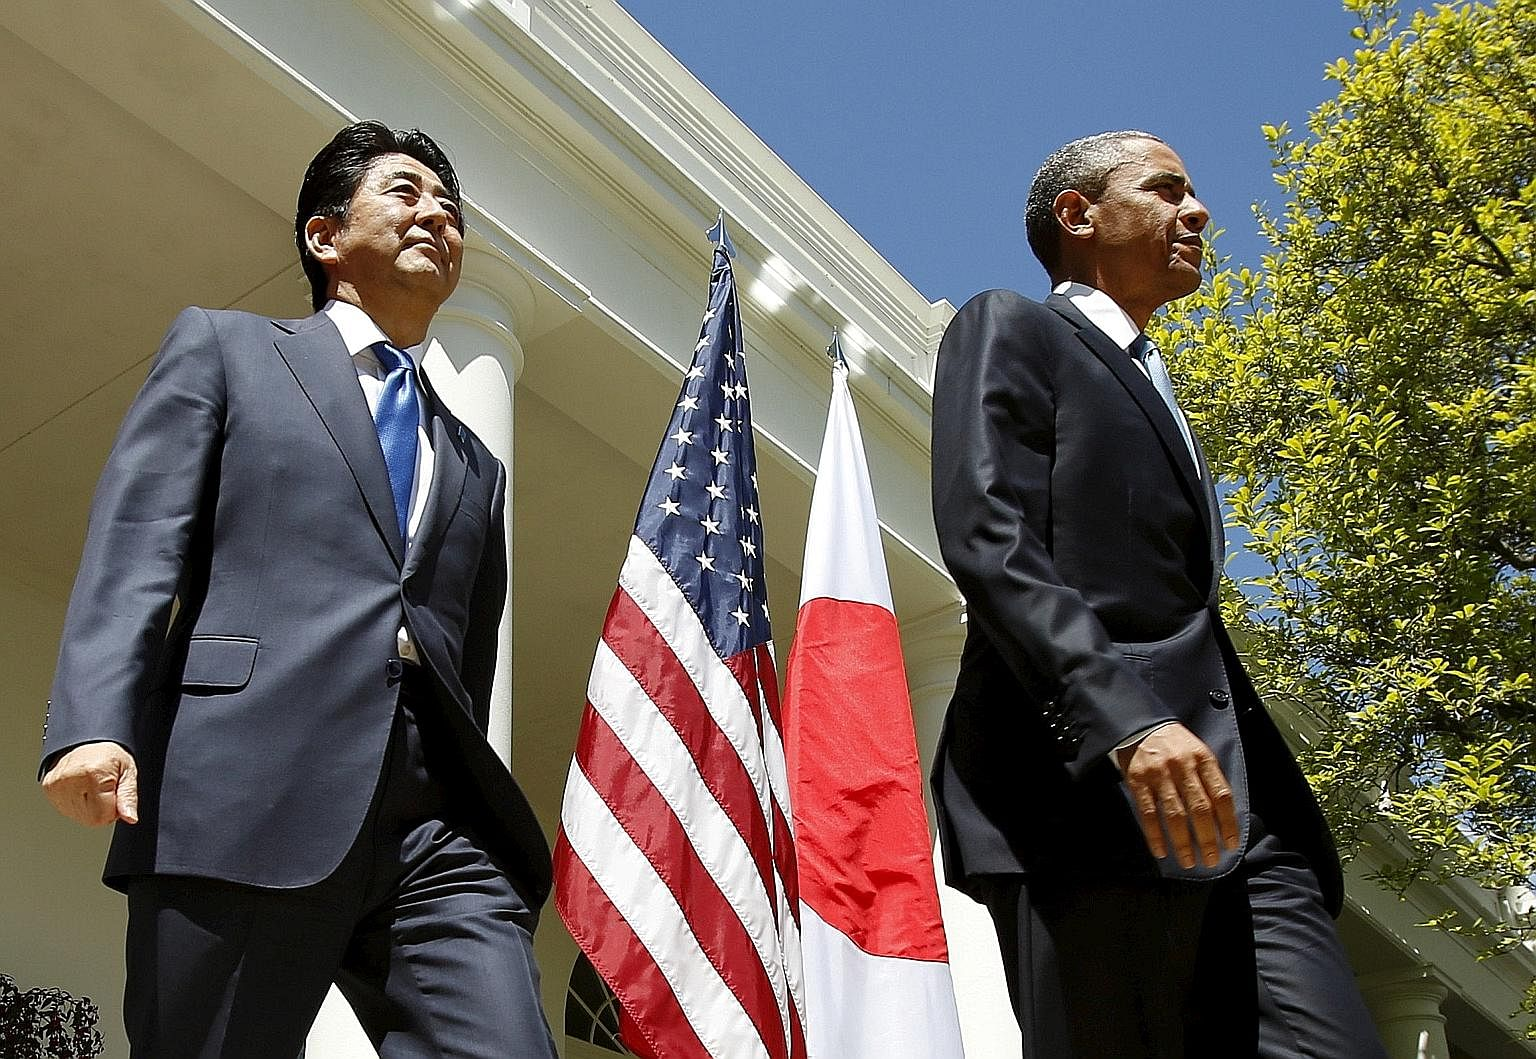 Mr Obama and Mr Abe in the Rose Garden of the White House during the latter's US visit in April last year. Mr Obama will visit the Peace Memorial in Hiroshima next week. While there are no current plans for Mr Abe to make a reciprocal visit to Pearl